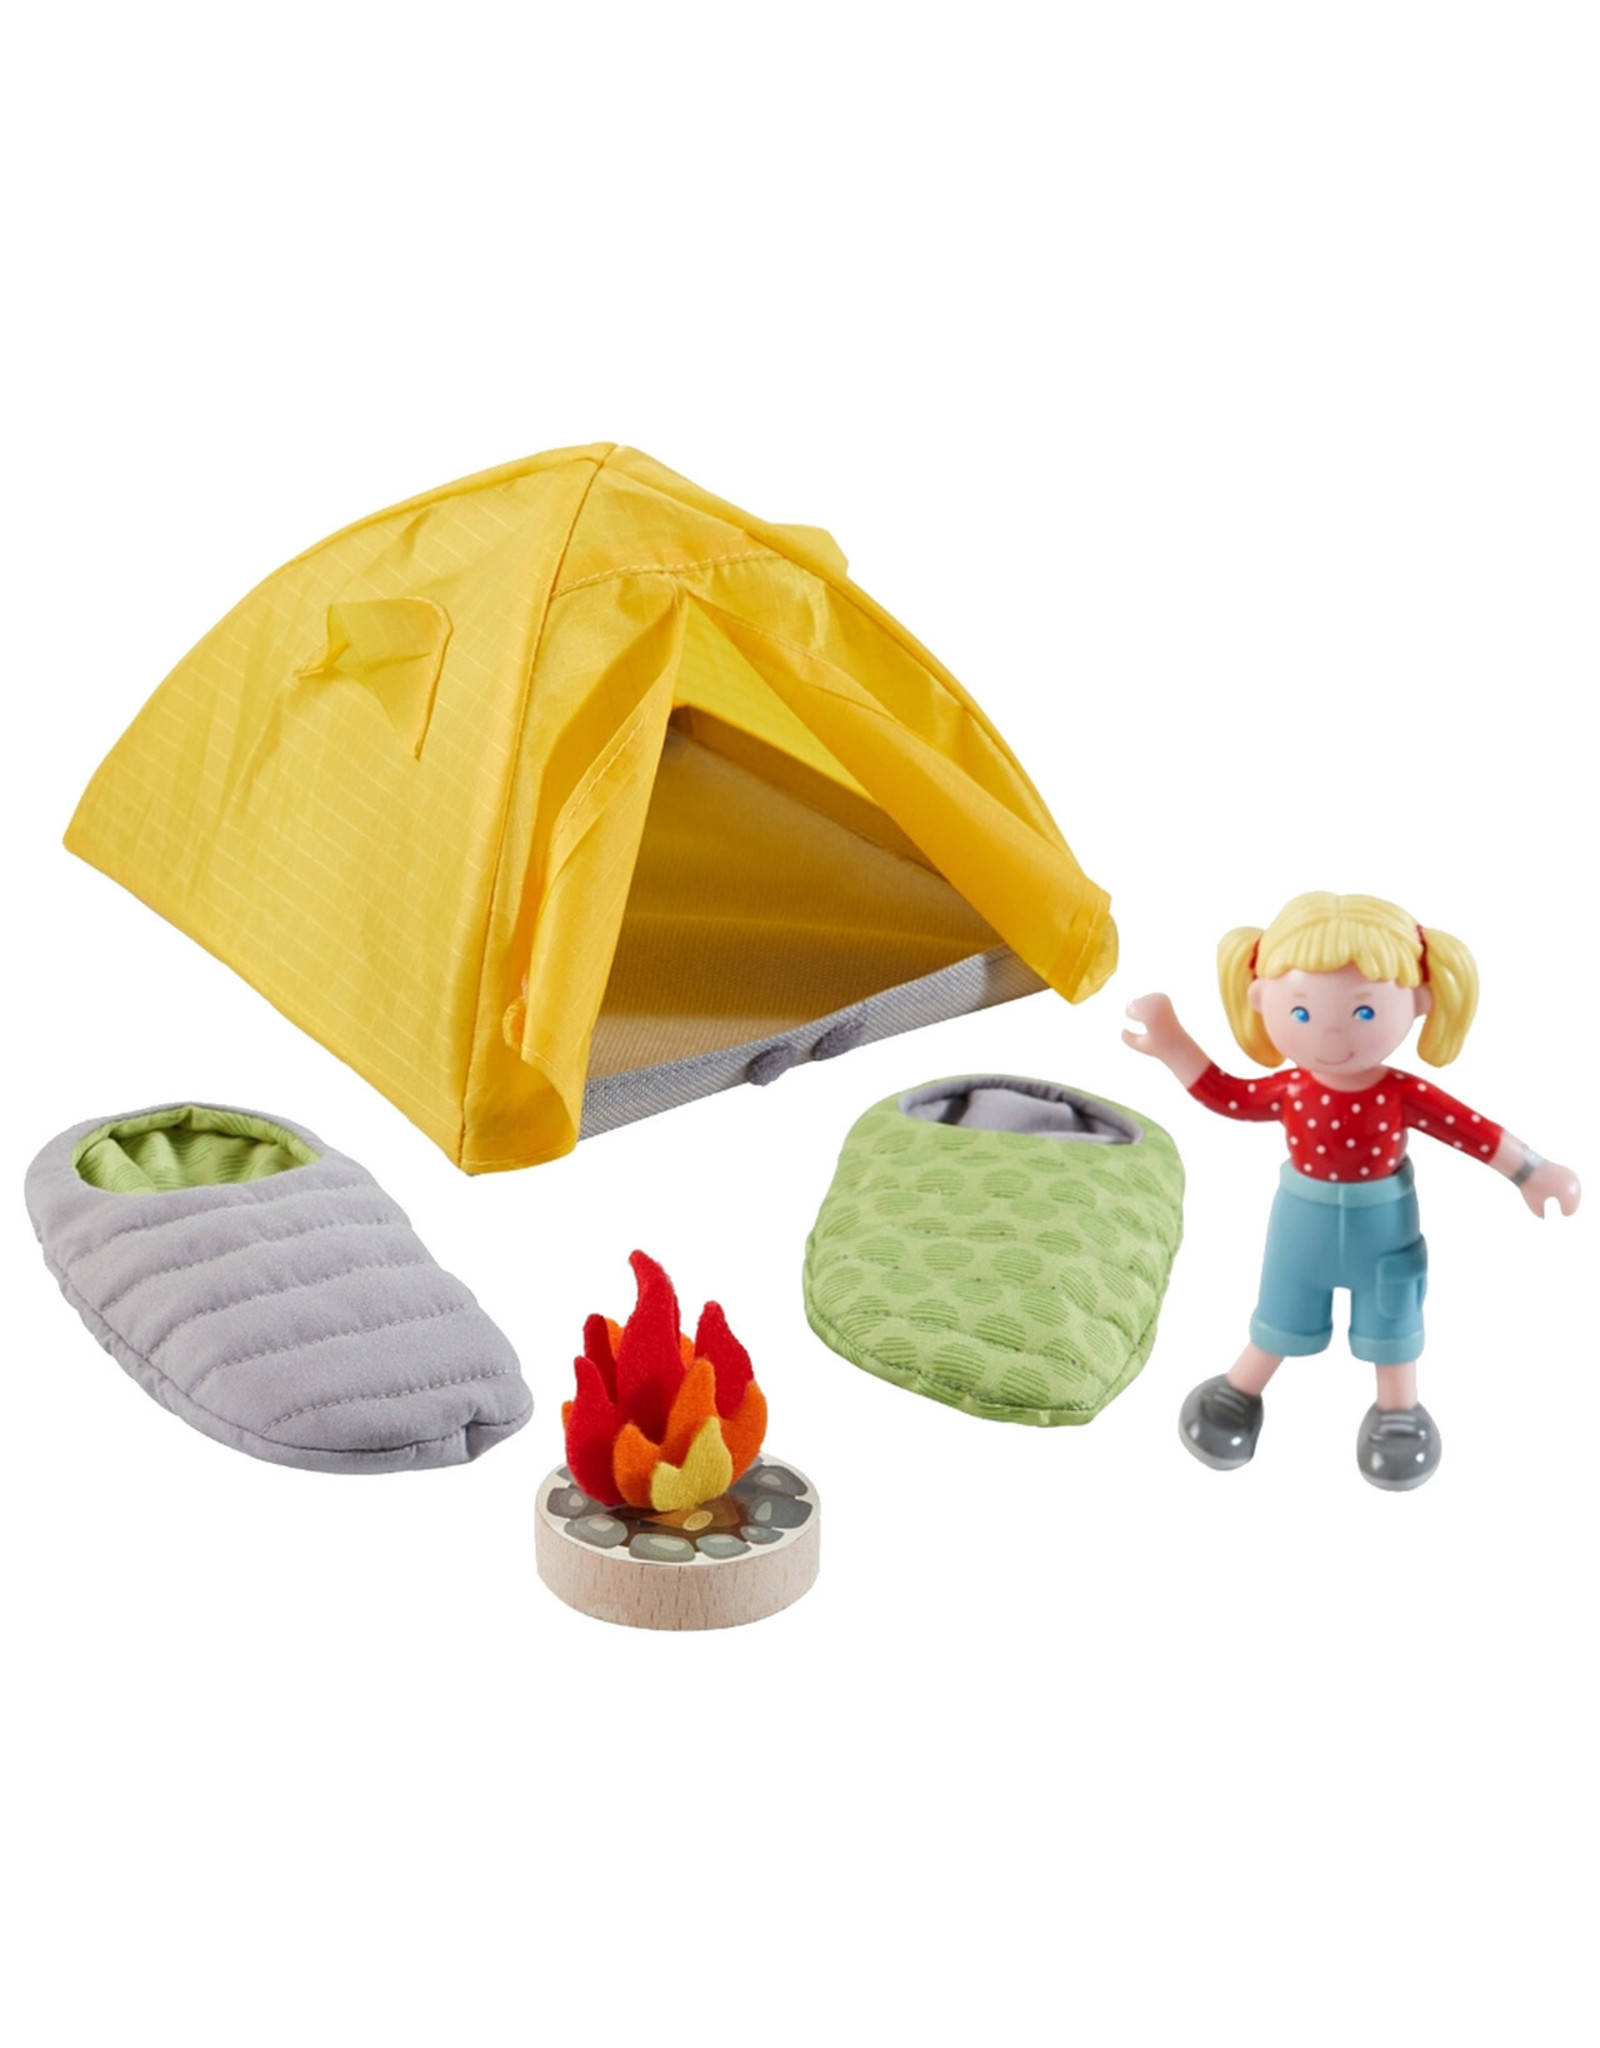 Haba Little Friends, Camping Tents & Sleeping Bags